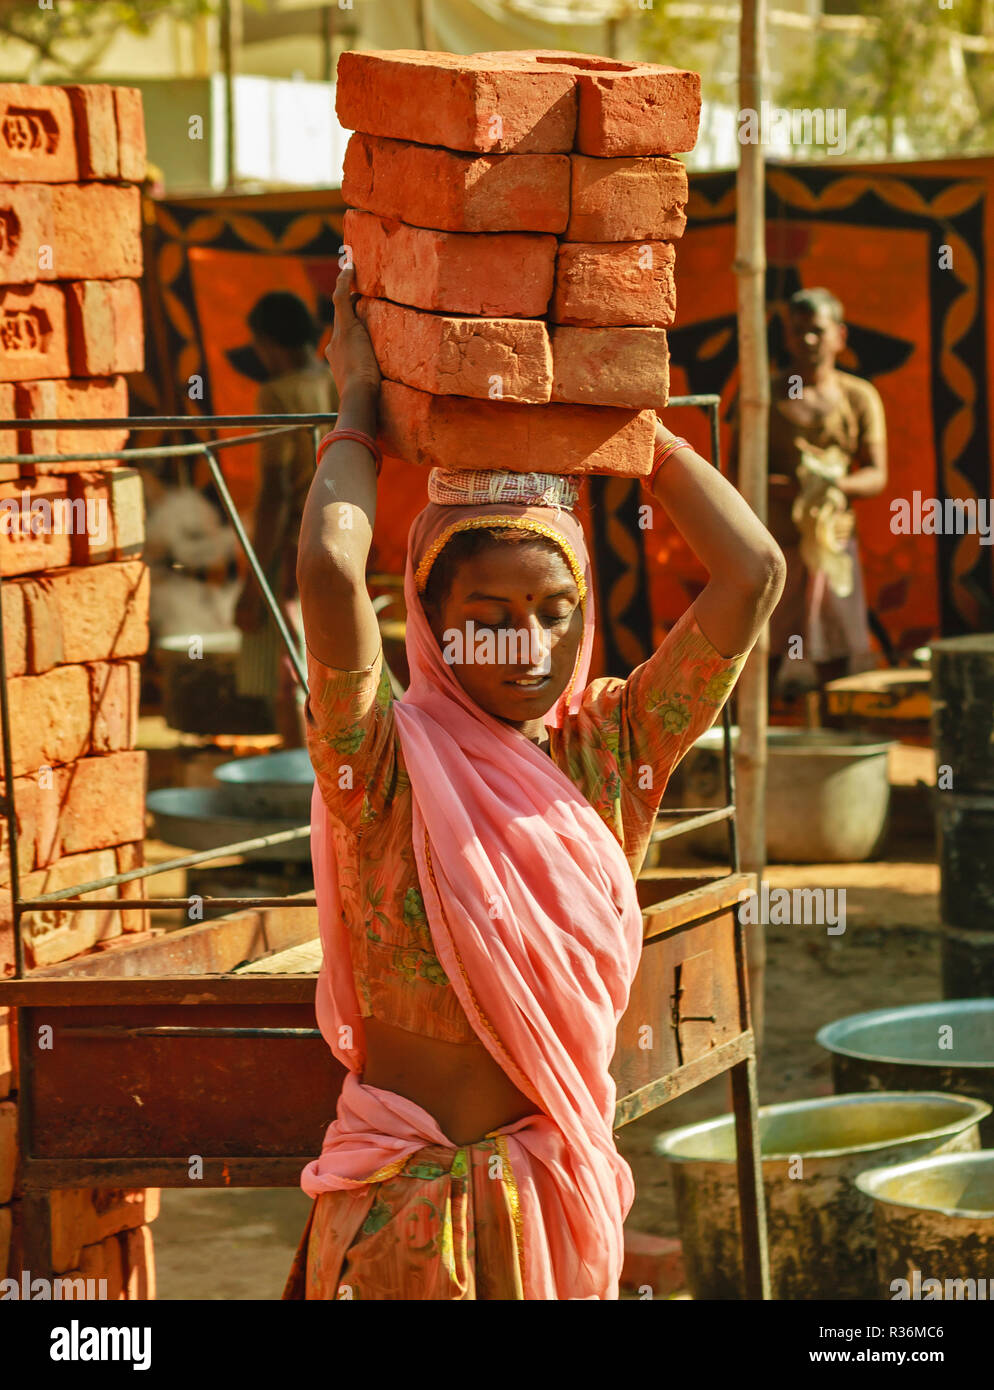 RAJASTHAN INDIA  YOUNG WOMAN CARRYING A LOAD OF TEN HOUSE BRICKS ON HER HEAD - Stock Image